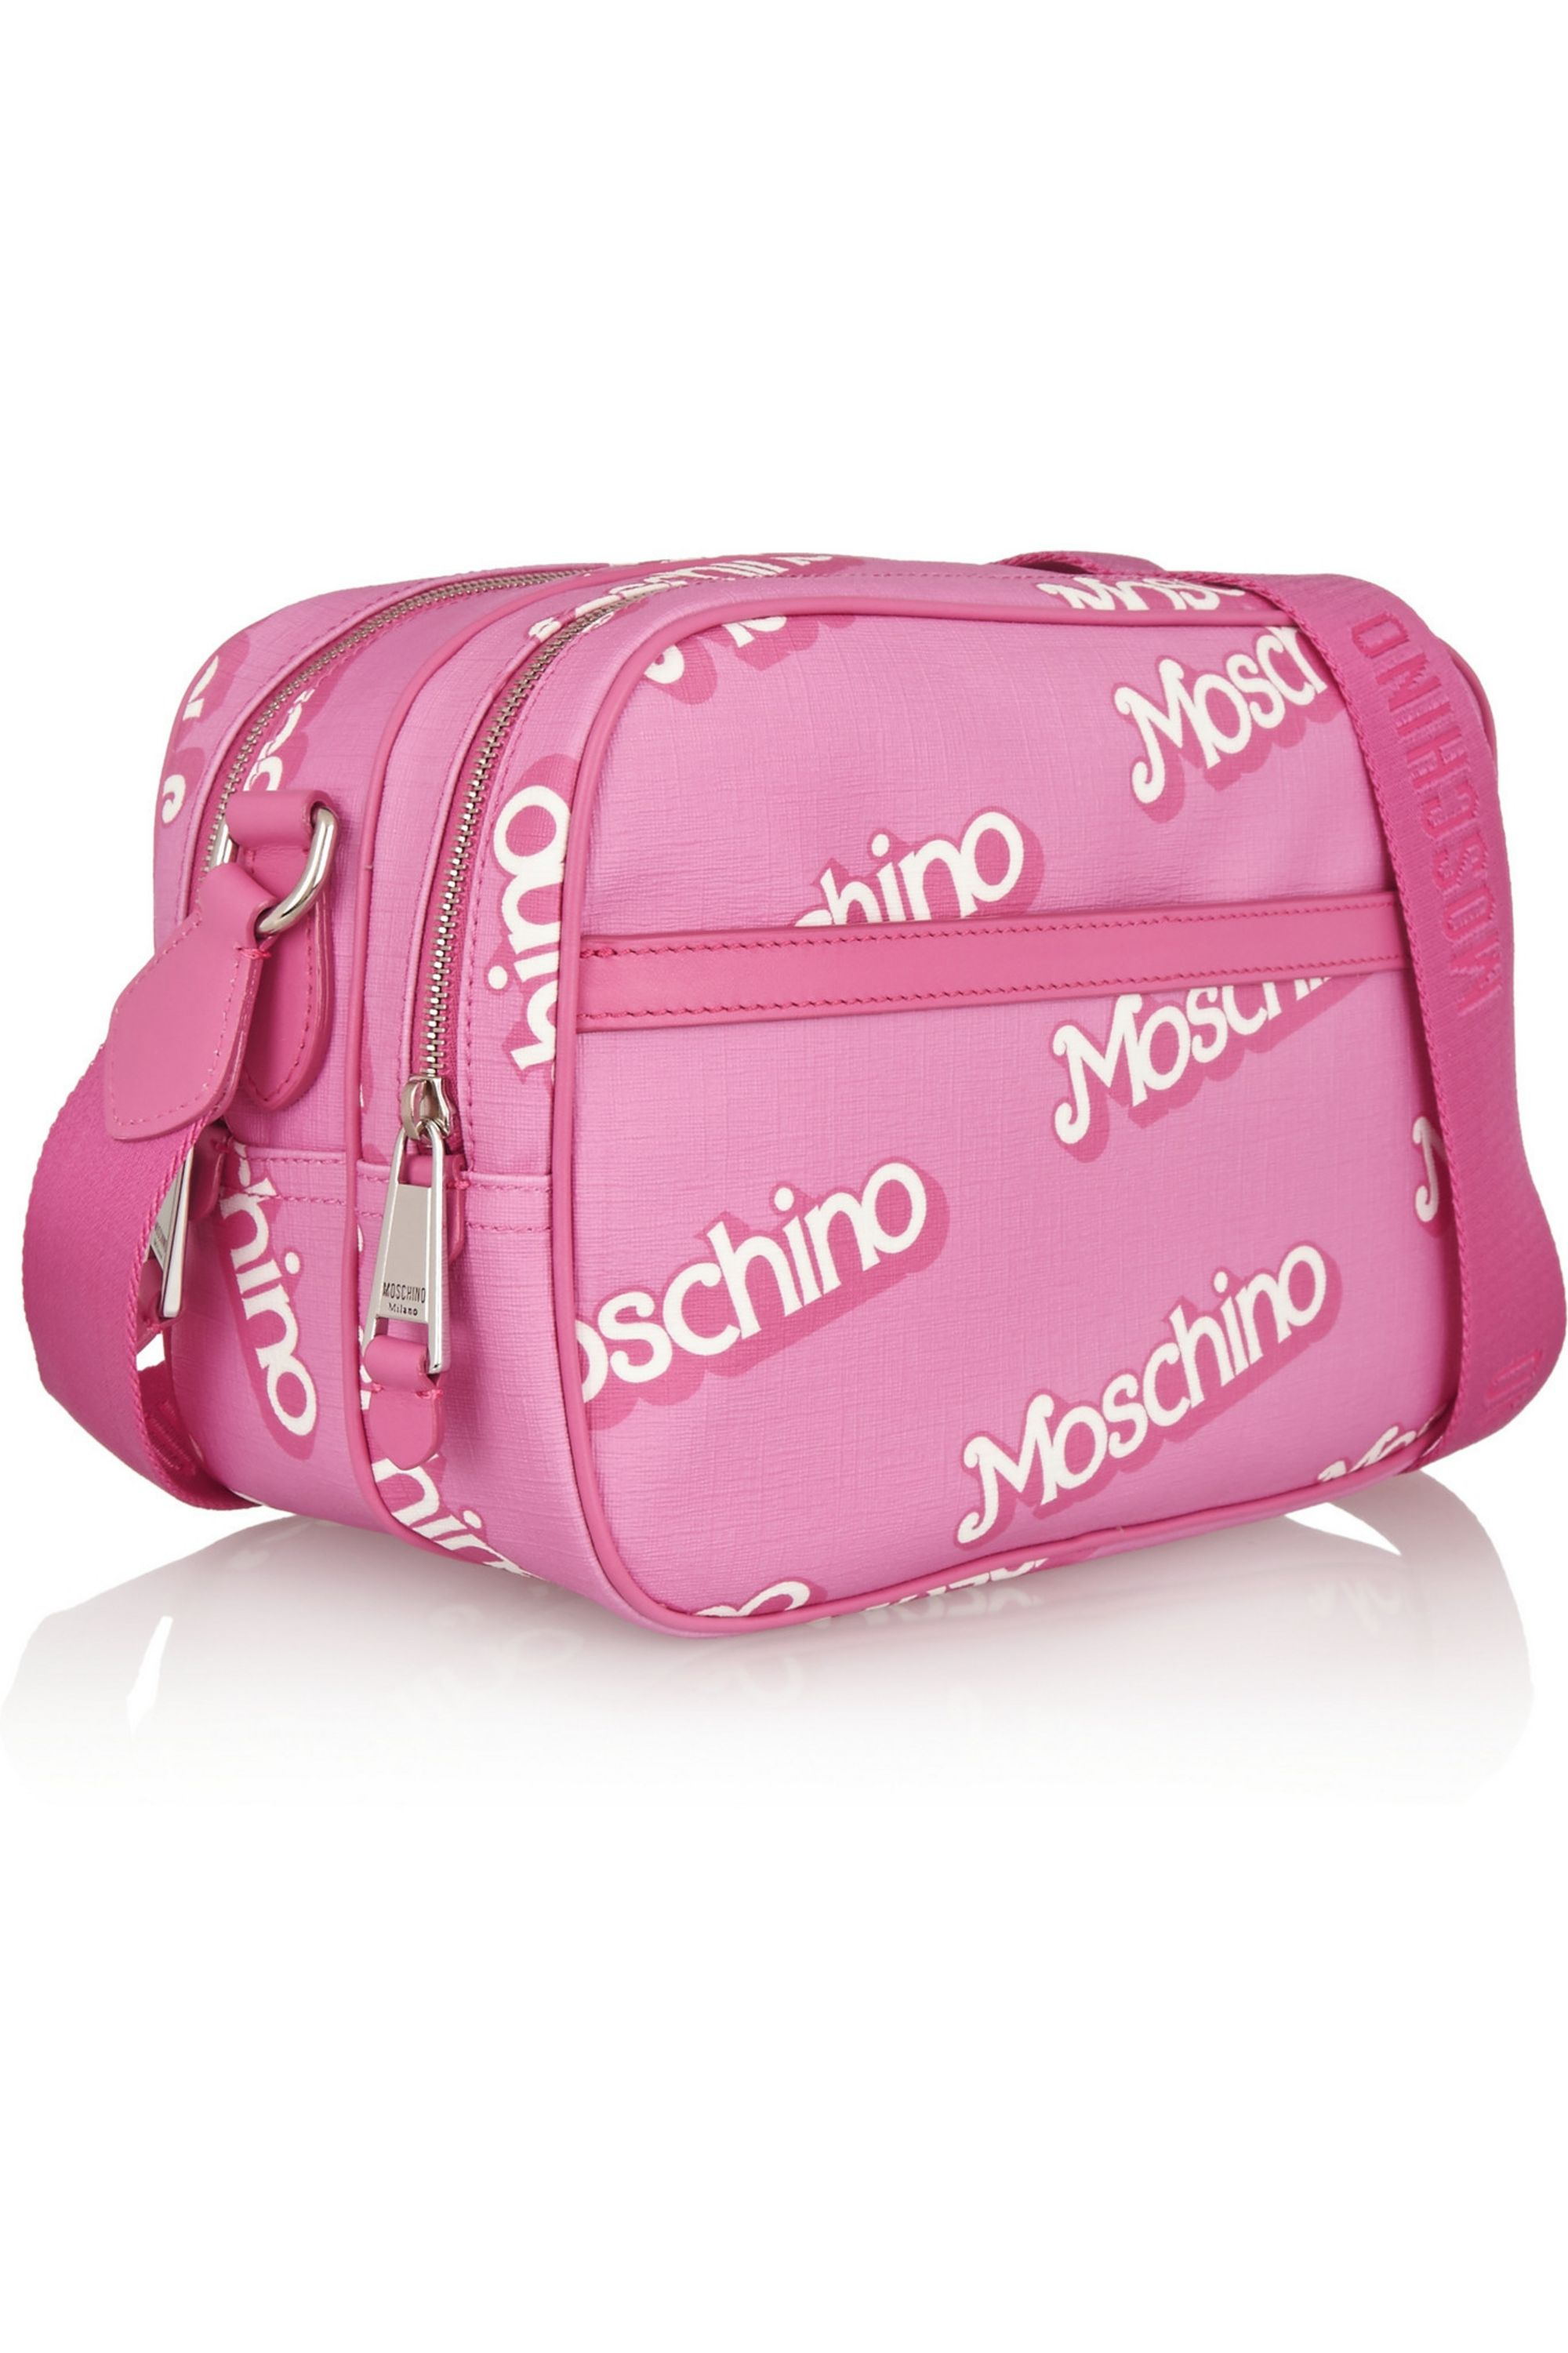 Moschino Printed textured-PVC shoulder bag